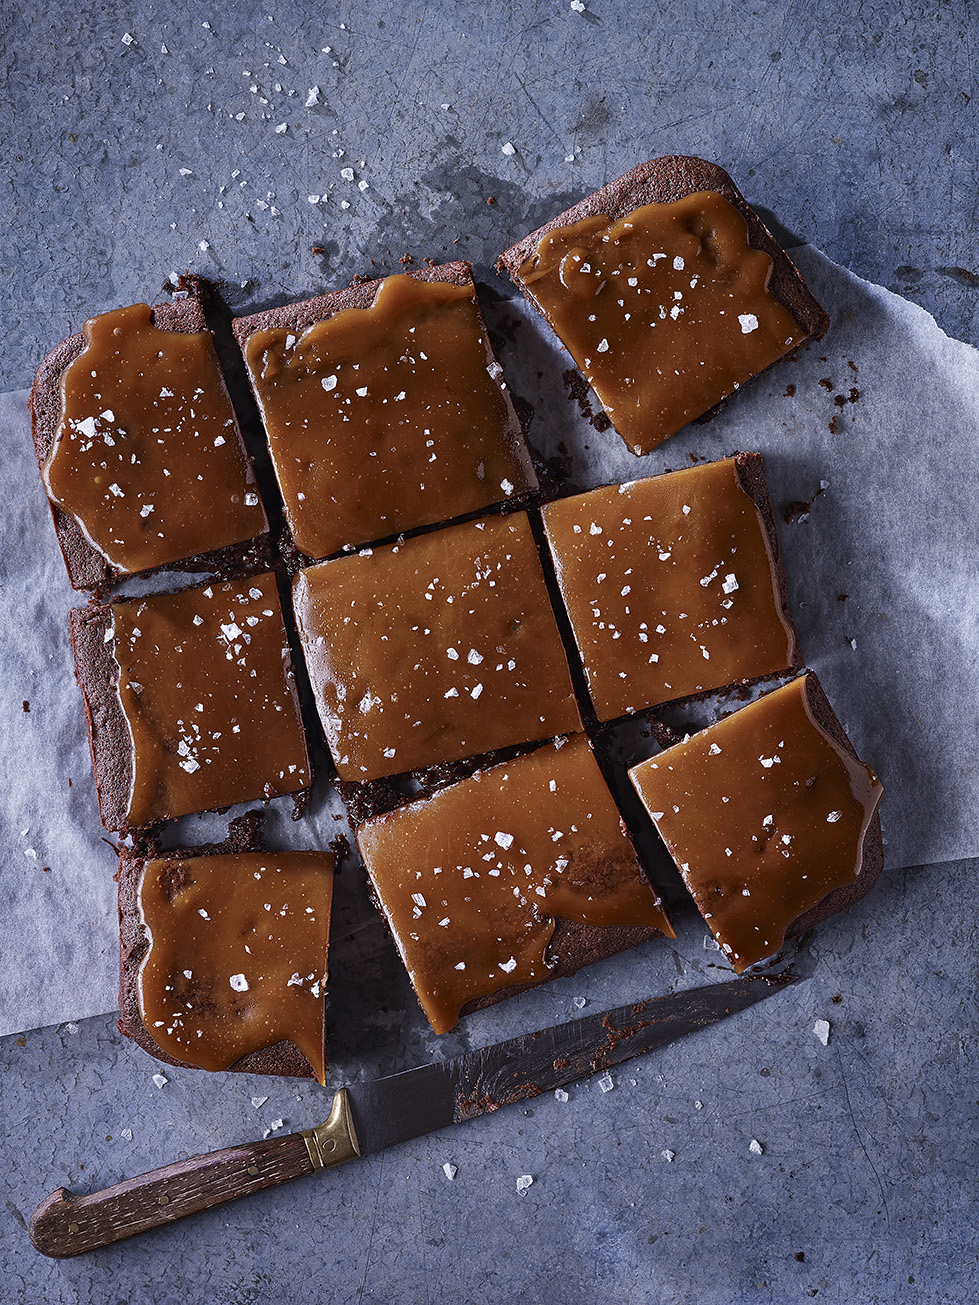 GOOEY SEA SALTED CARAMEL BROWNIES